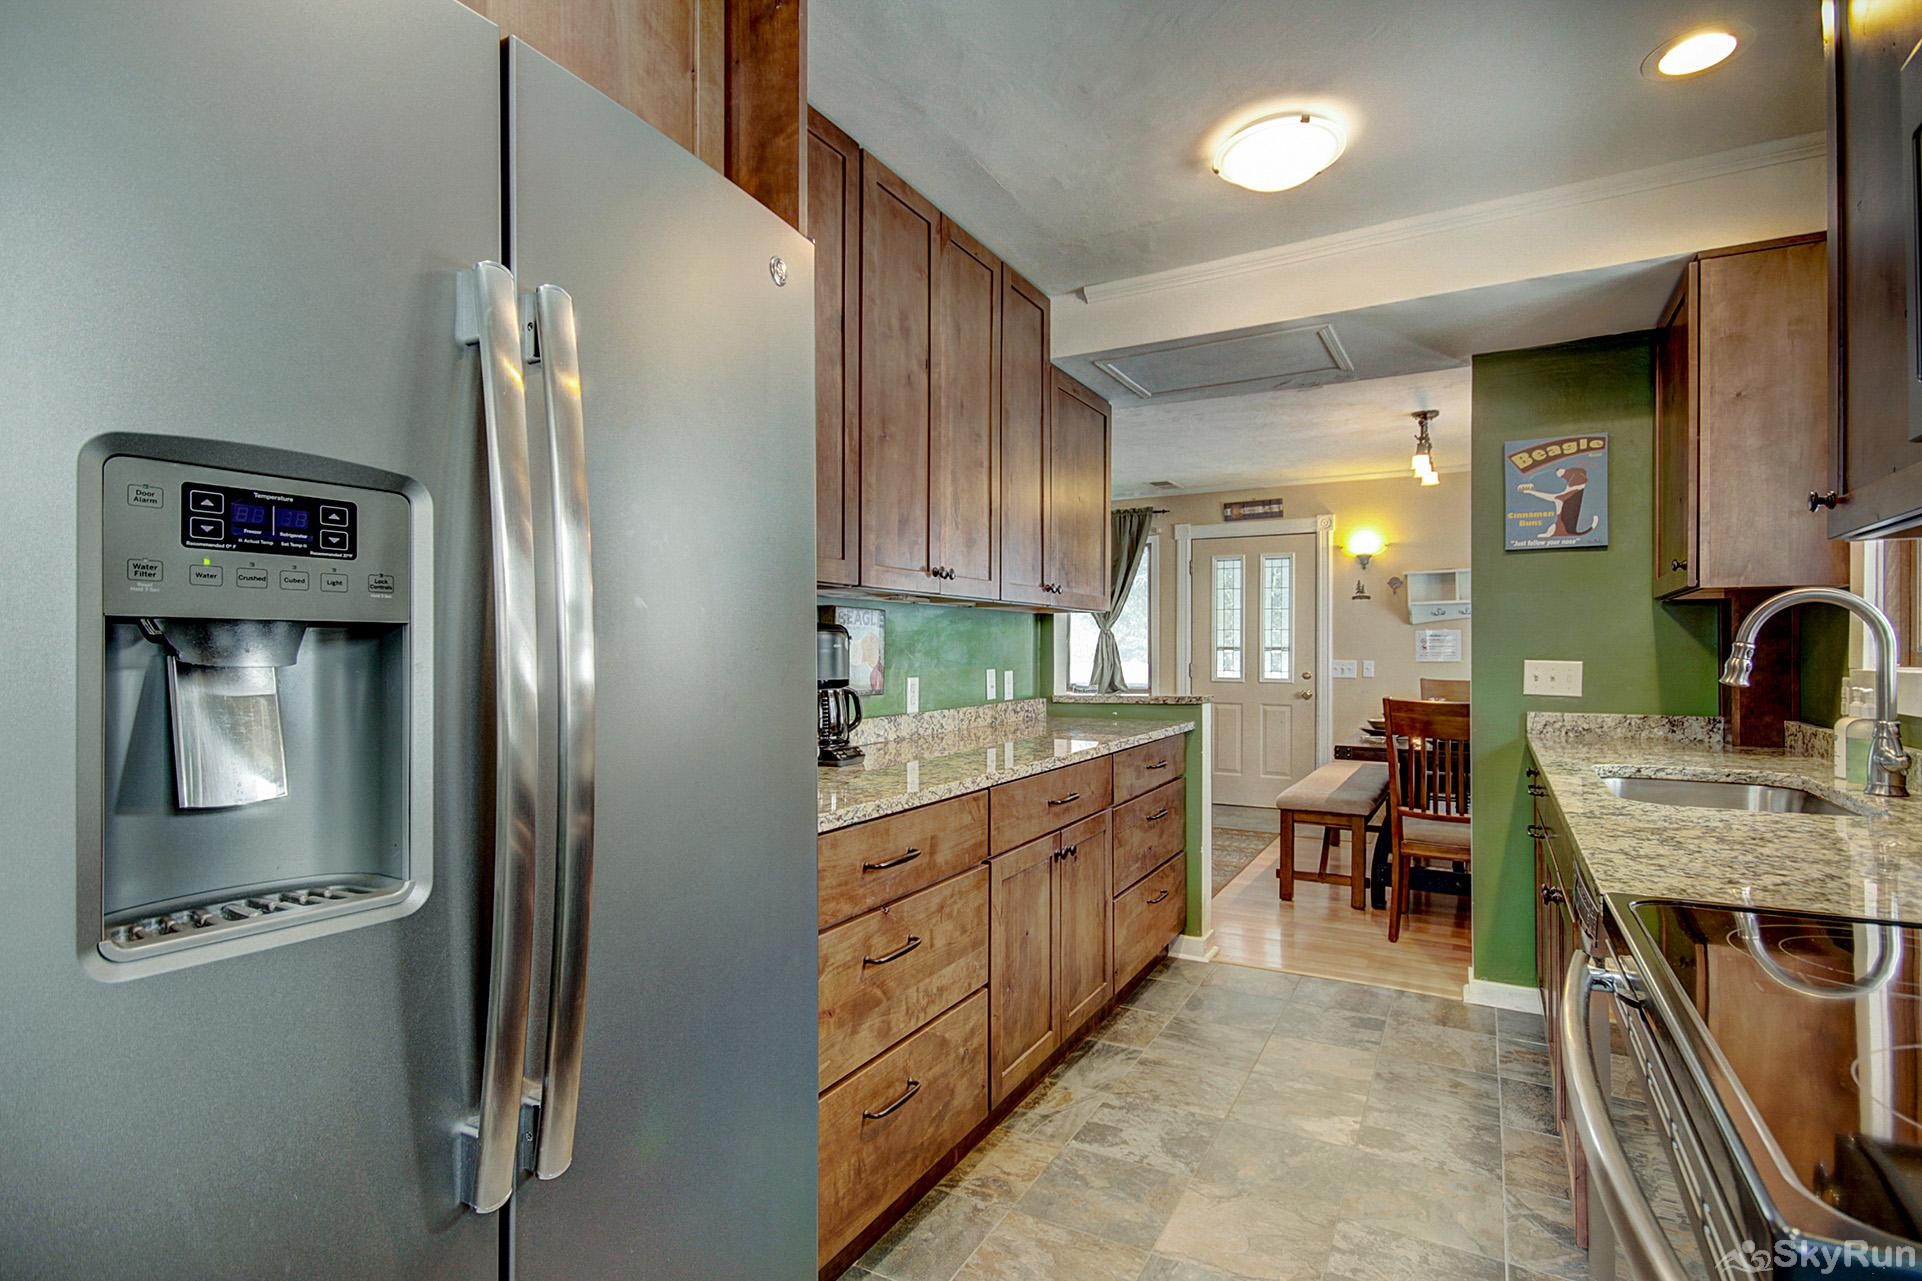 Lazy Dog Lodge Fully equipped kitchen updated with stainless steel appliances